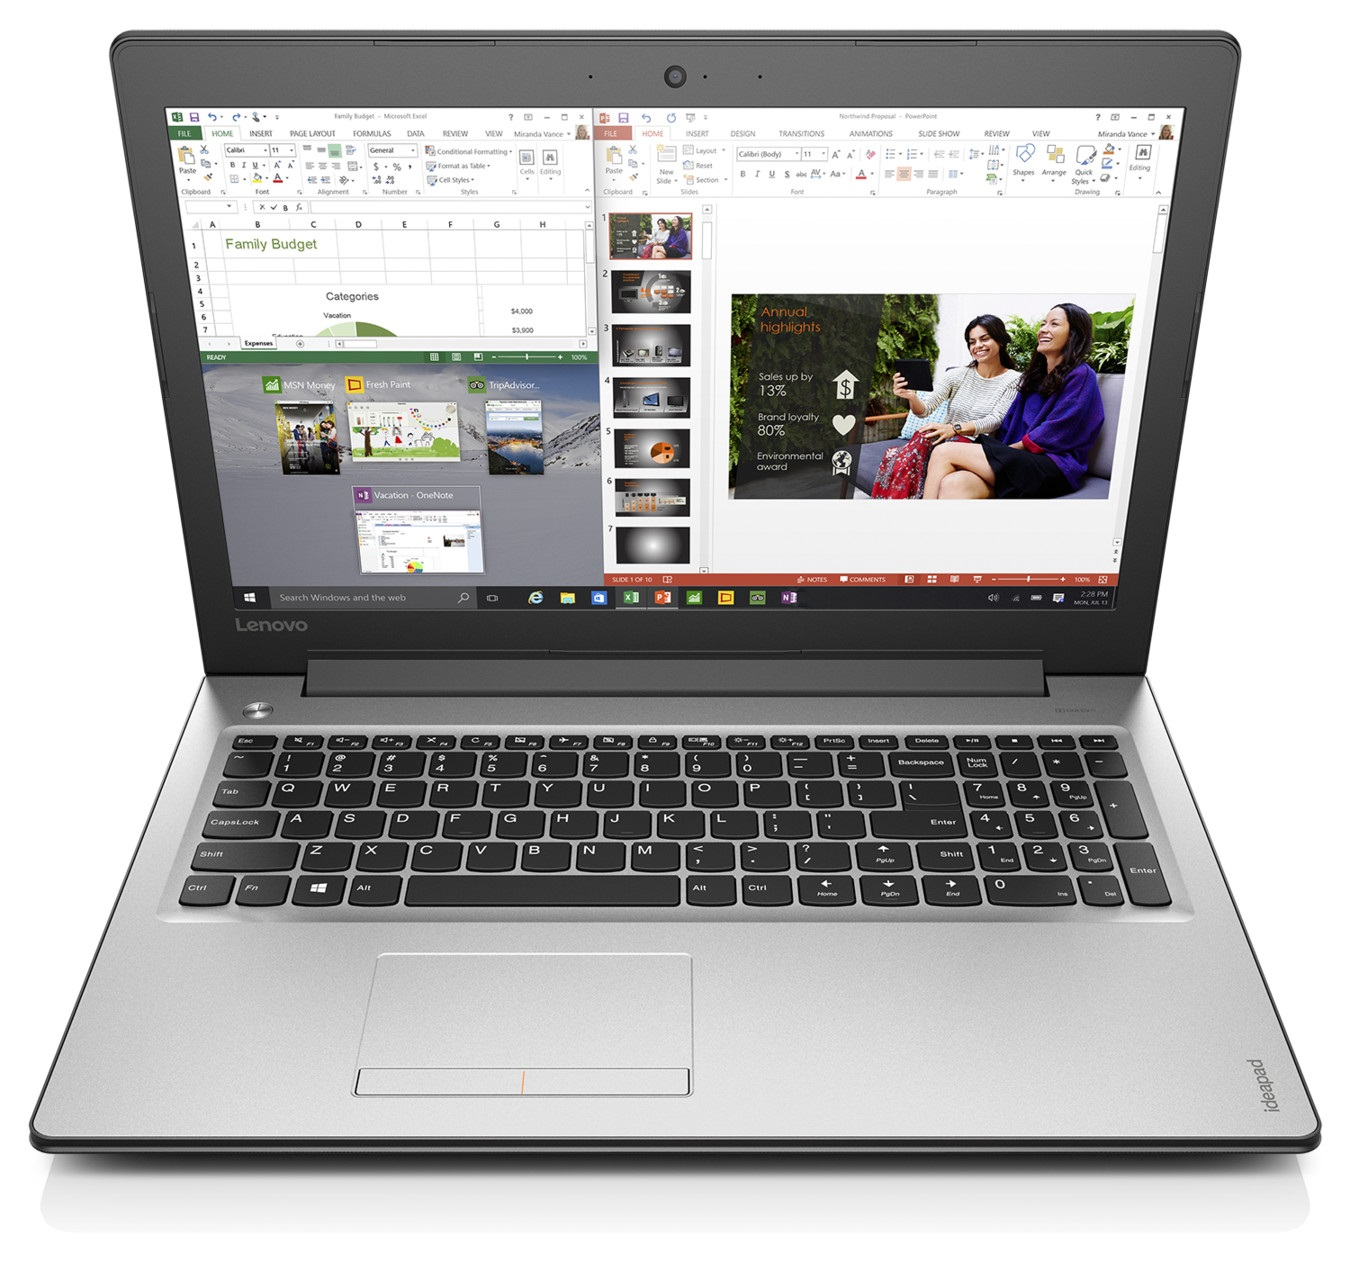 "Lenovo IdeaPad 310-15IKB i5-7200U 3,10GHz/6GB/1TB/15,6"" FHD/GeForce 2GB/DVD-RW/WIN10 stříbrná 80TV01EVCK"